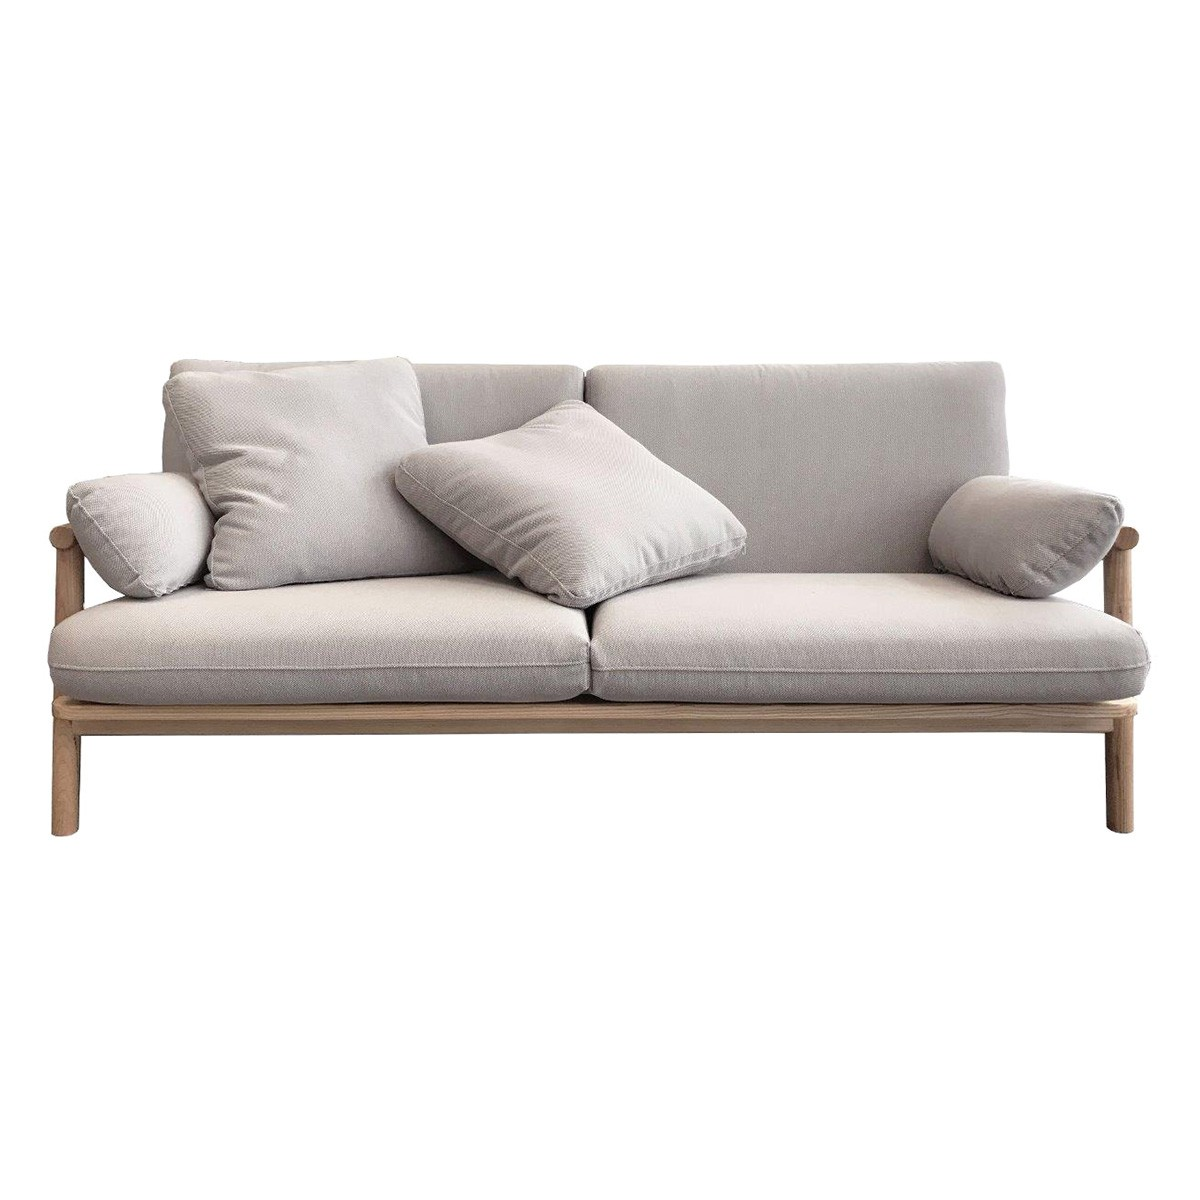 Norm Fabric & Ash Timber Sofa, 2 Seater, Pale Grey